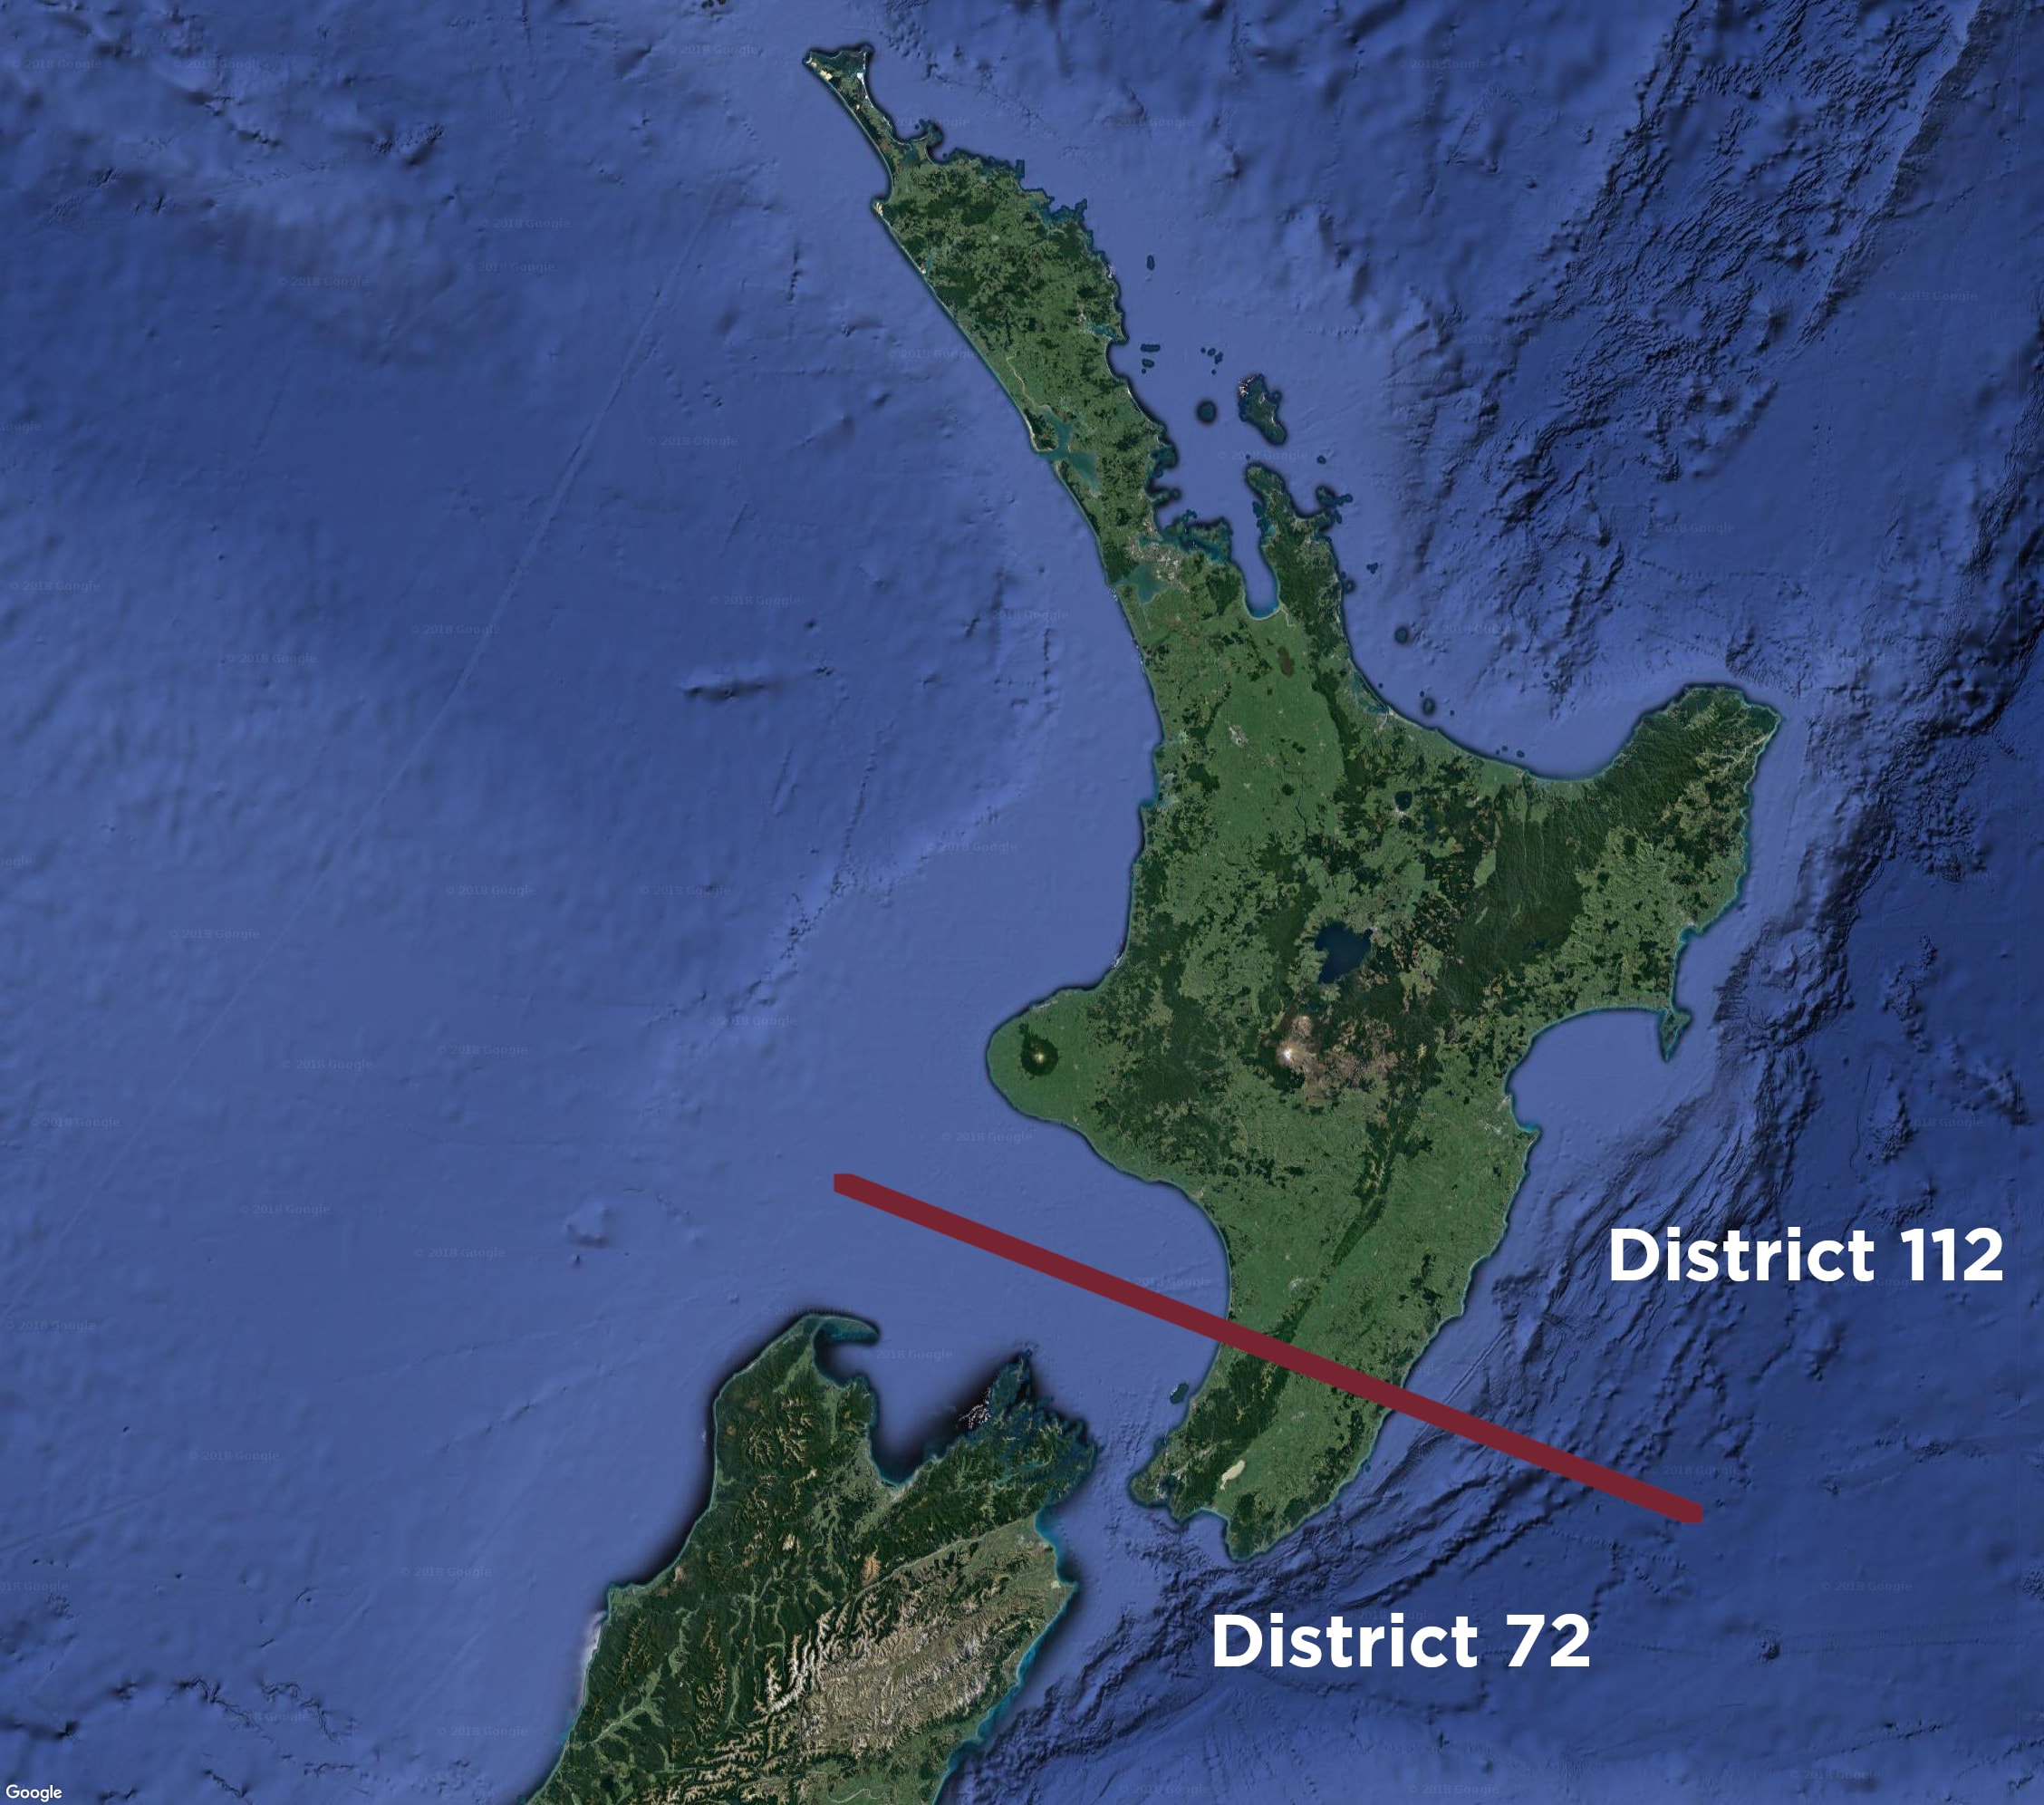 Map of NZ Showing split between two districts